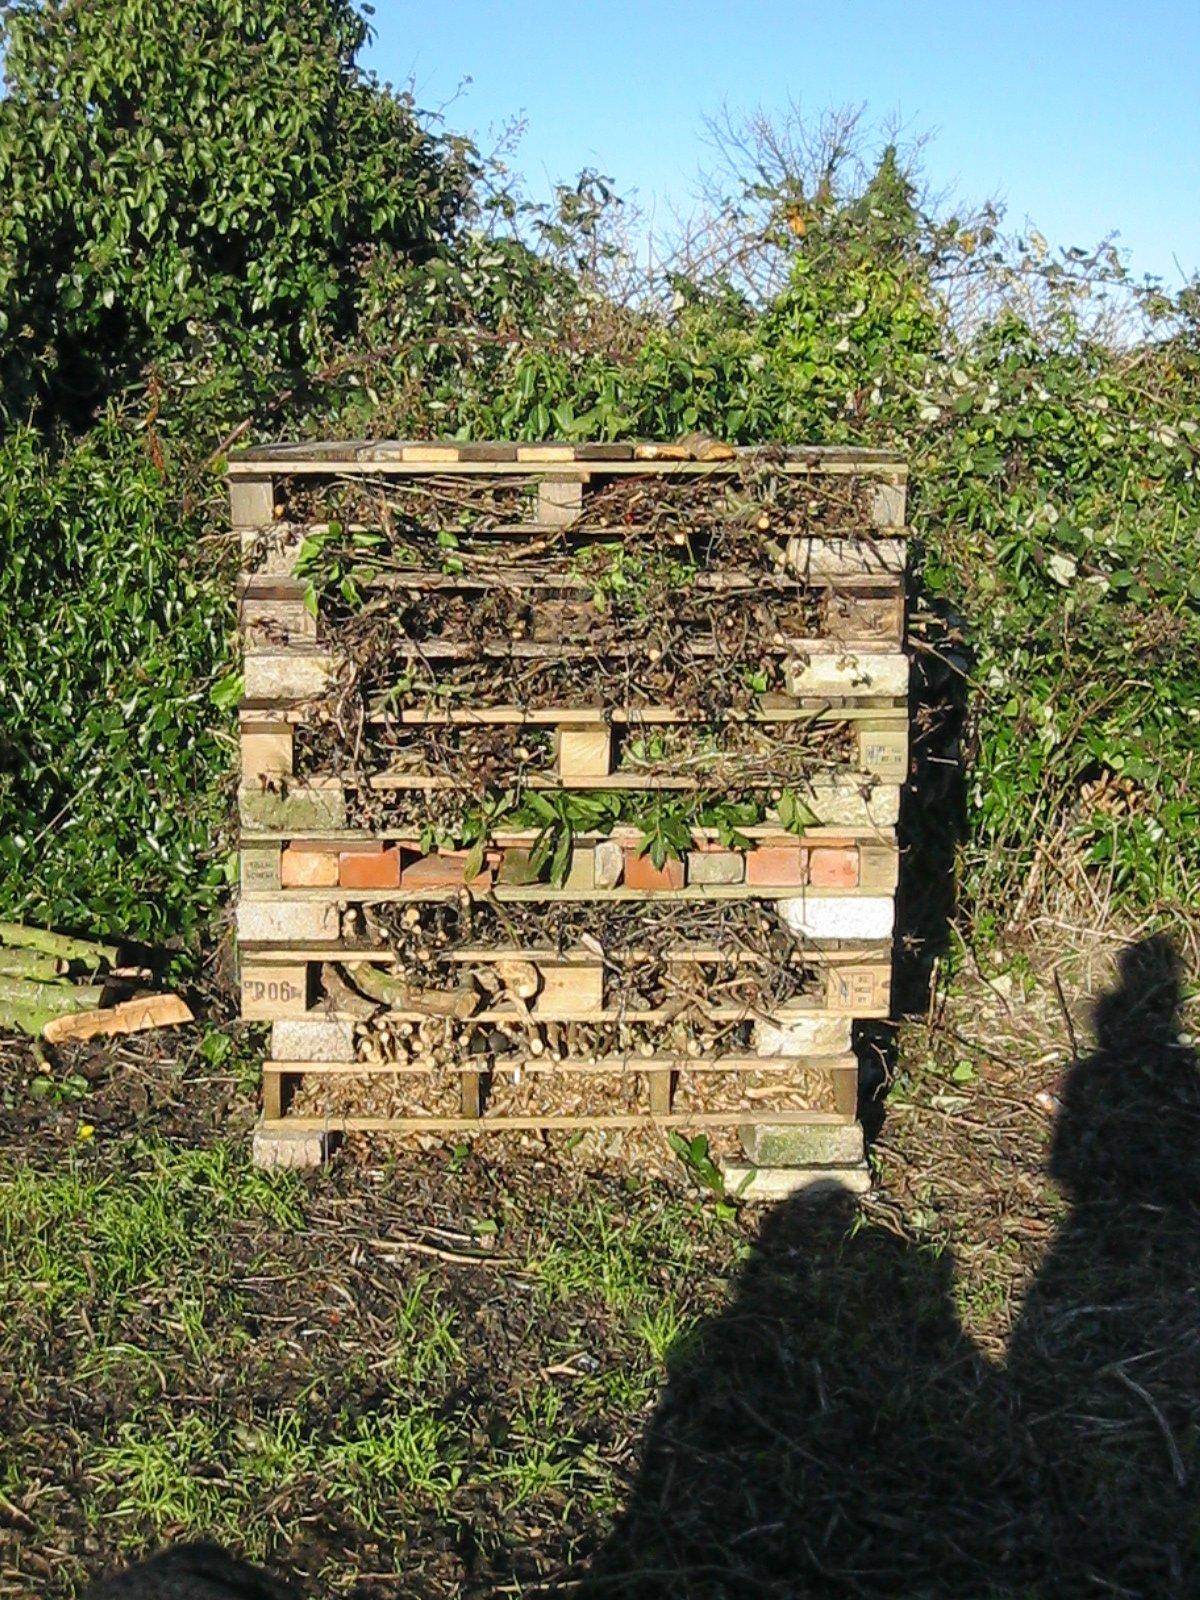 Our 5* bug hotel